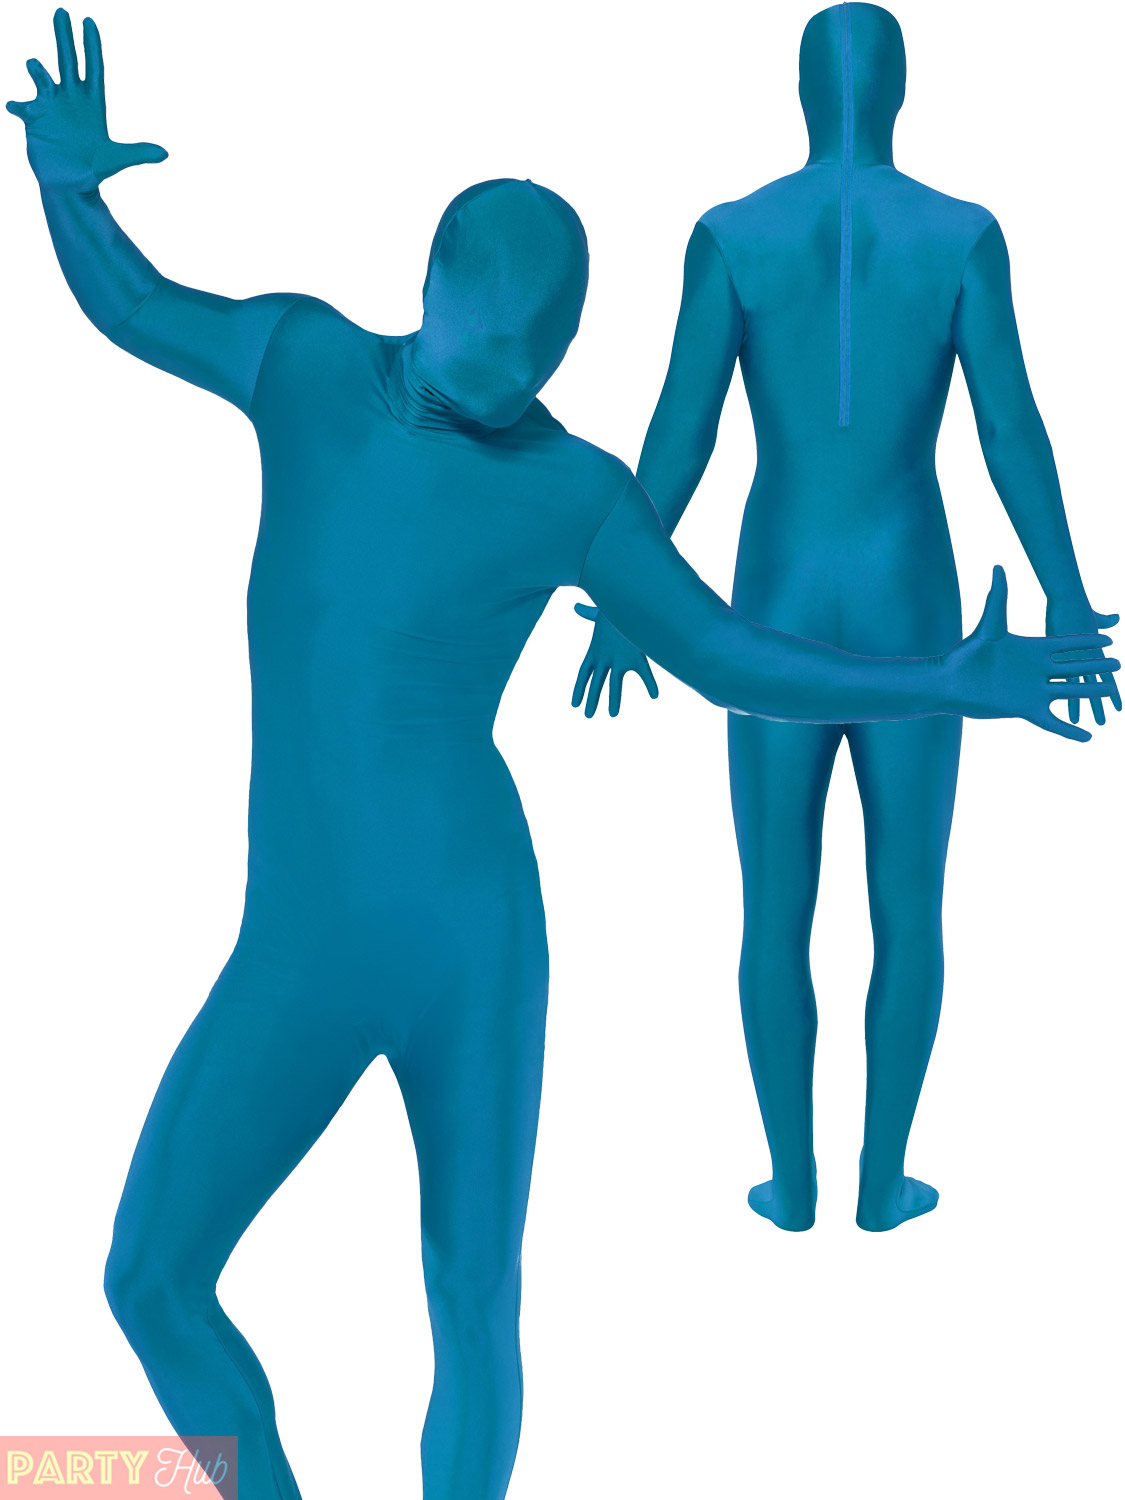 Mens Second Skin Body Suit Adults Fancy Dress Costume Stag Do Party Outfit Lycra